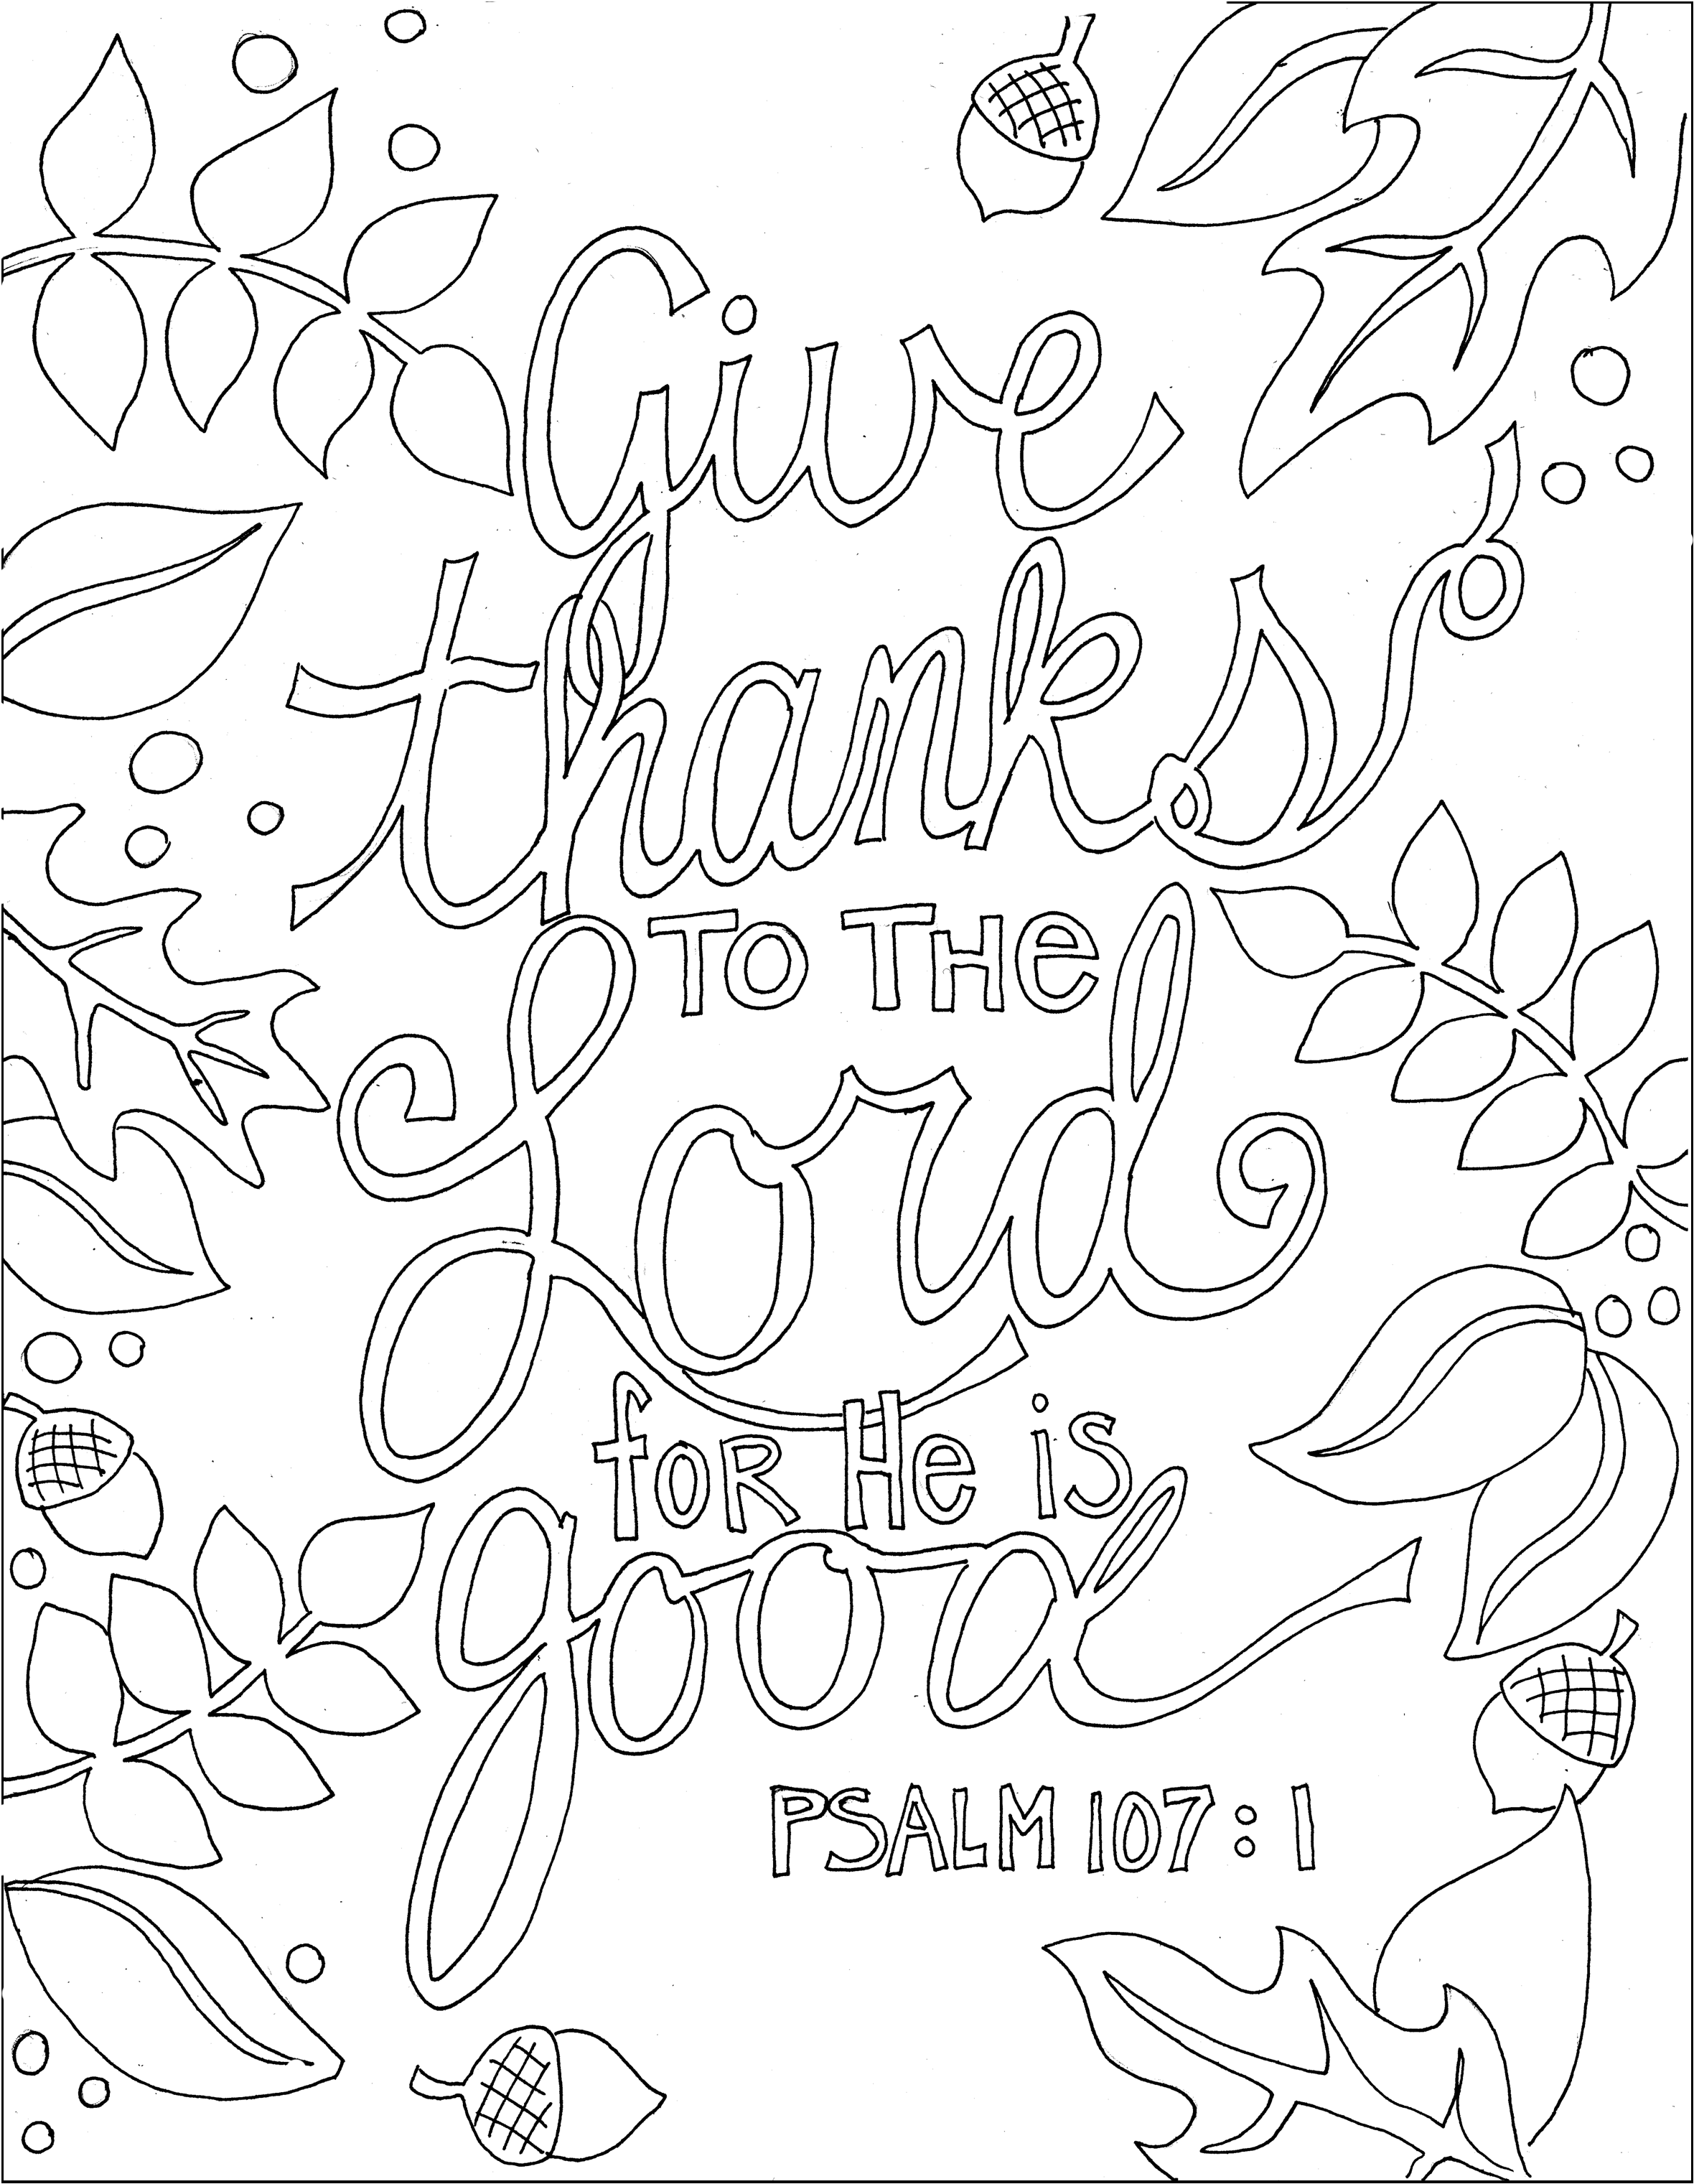 kjv bible verse coloring pages - photo#21